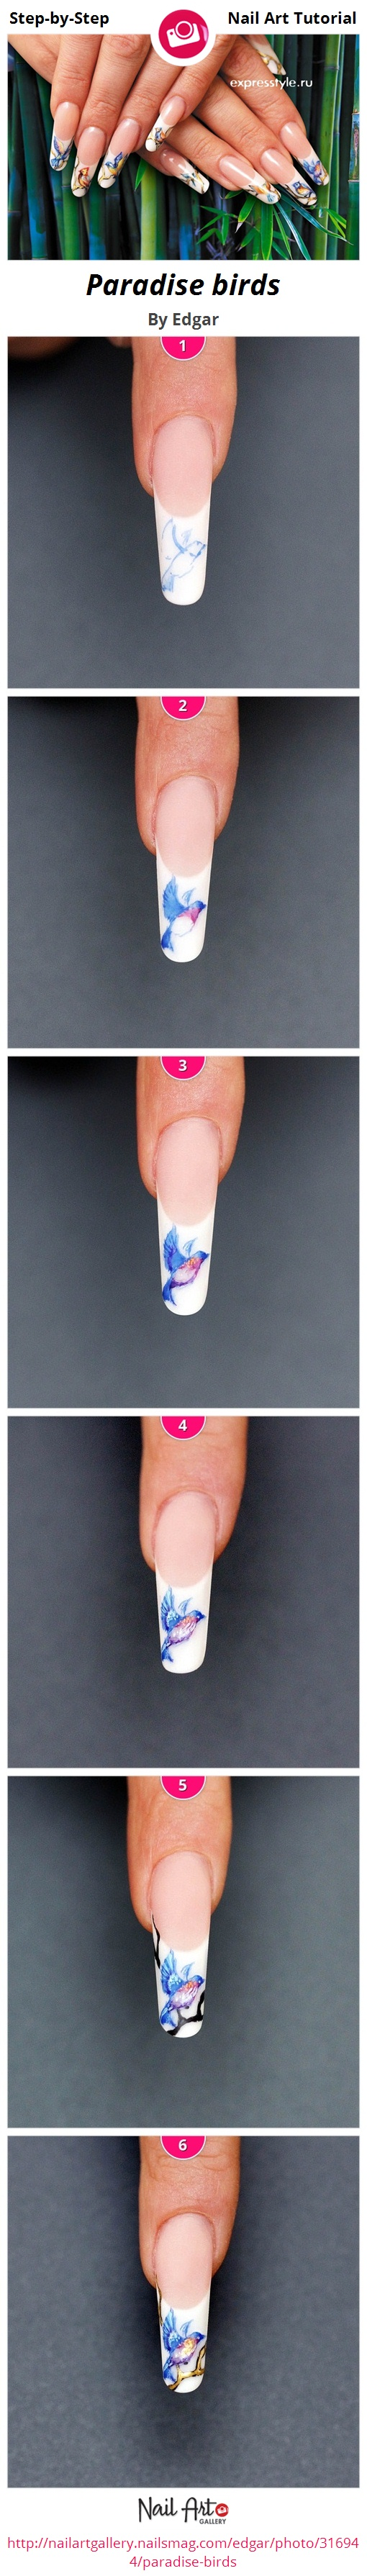 Paradise birds by Edgar - Nail Art Gallery Step-by-Step Tutorials ...